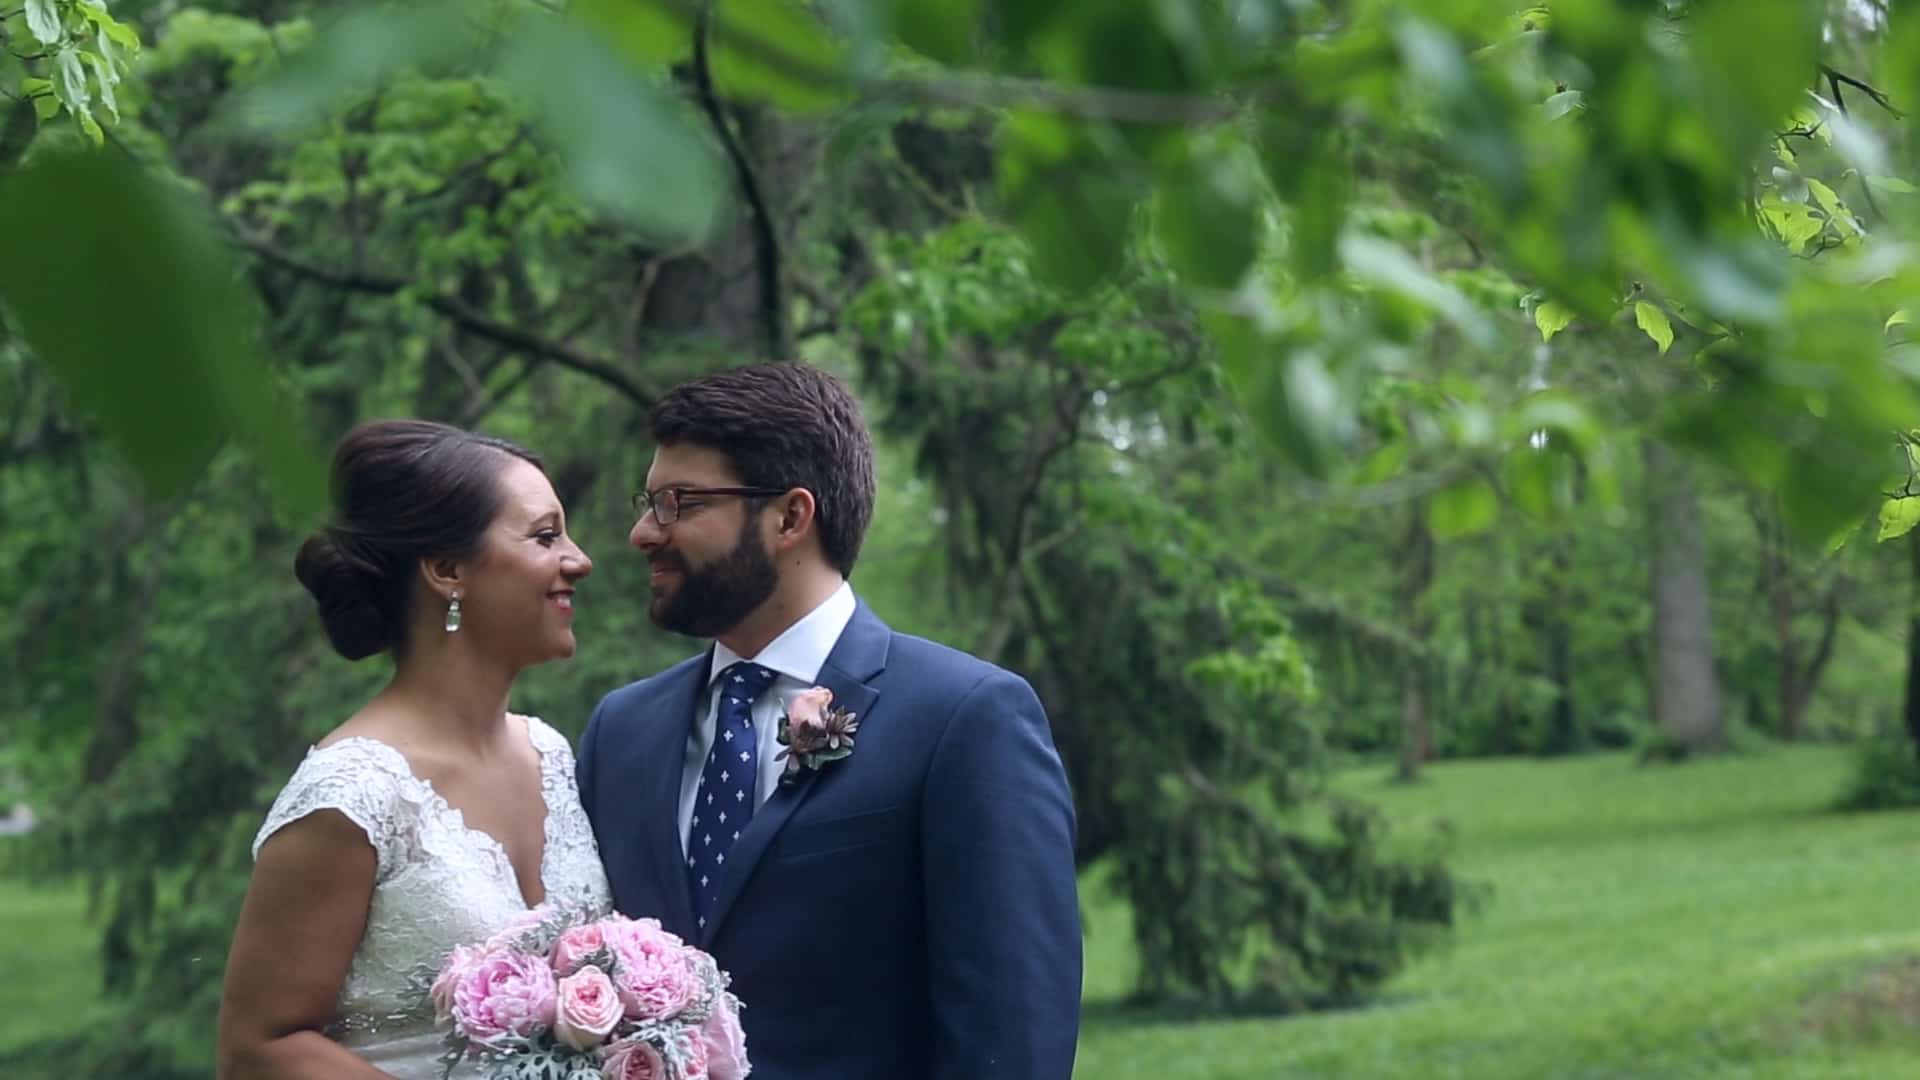 Wedding Video Highlights: Tim + Jenna